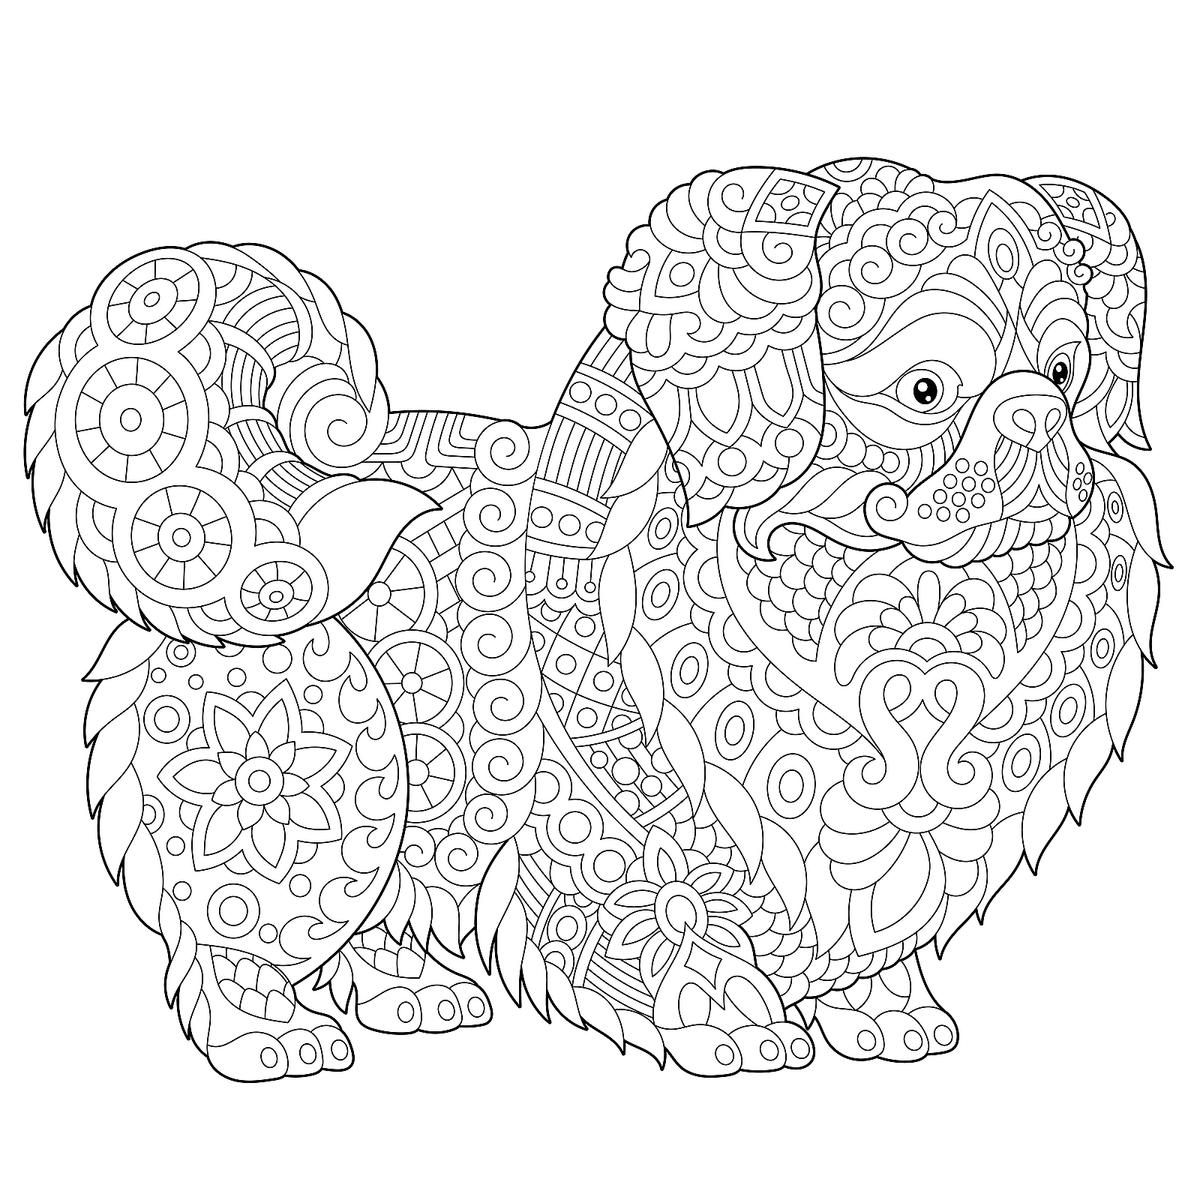 coloring pages of dogs printable printable puppy dog pals coloring book pages 02 dogs coloring of pages printable